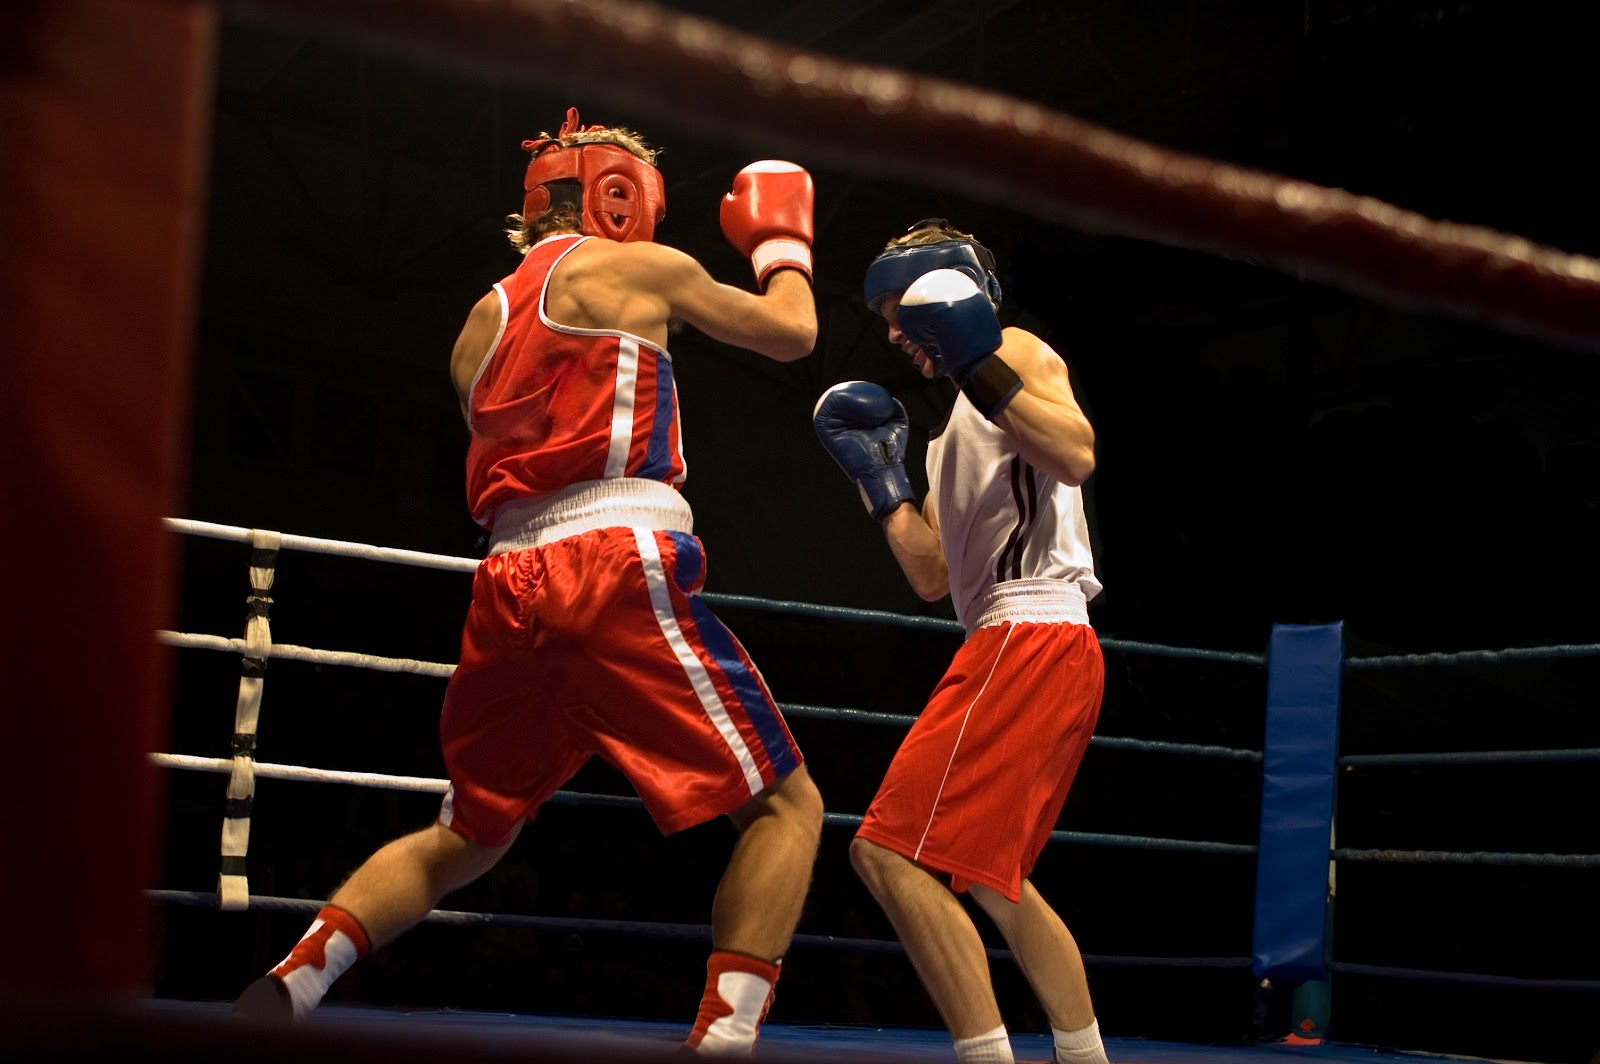 Action shot of amateur boxing fight in the ring.